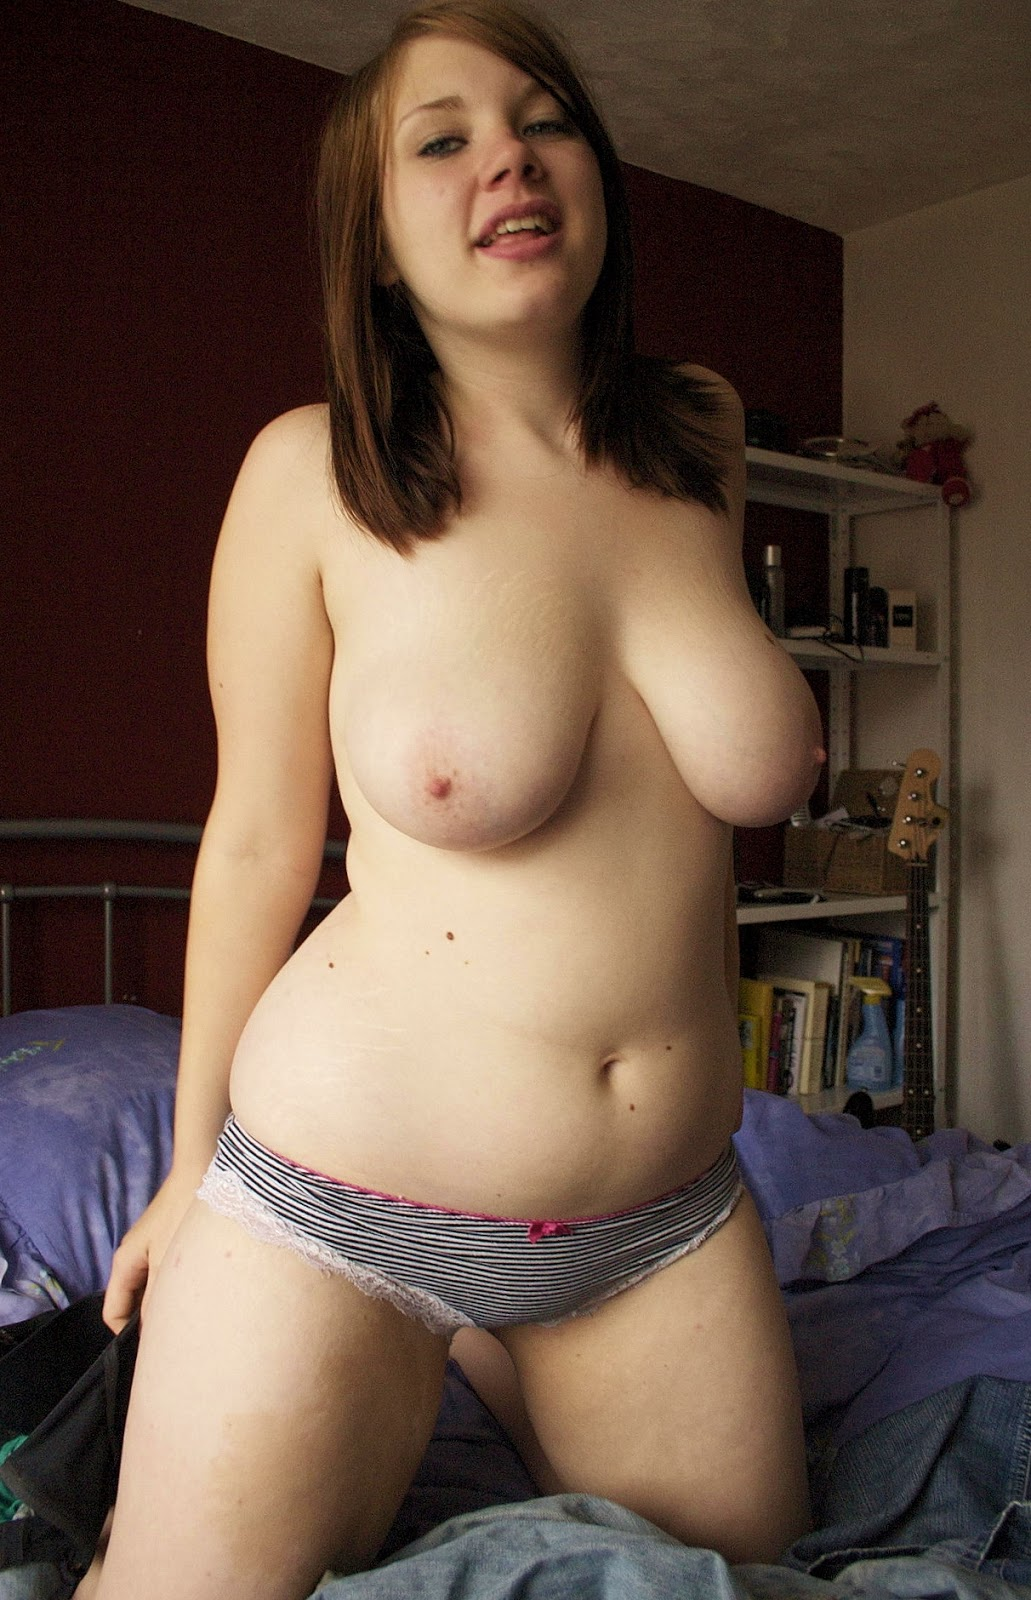 normal sized women naked